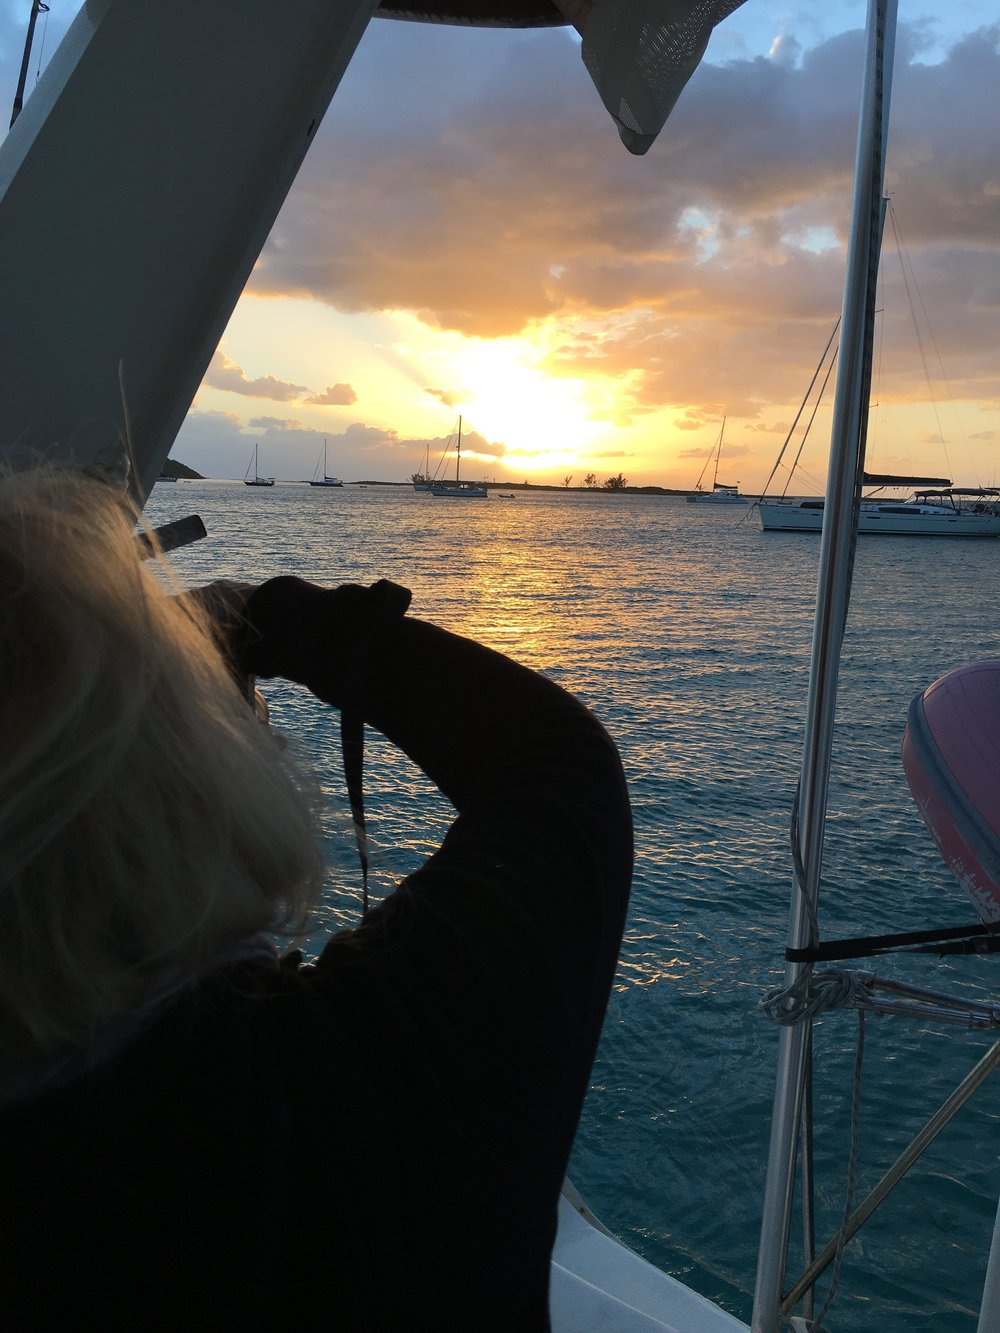 We moved after we hit bottom and awoke to a sunrise at Rose Island, a few miles east of Nassau.